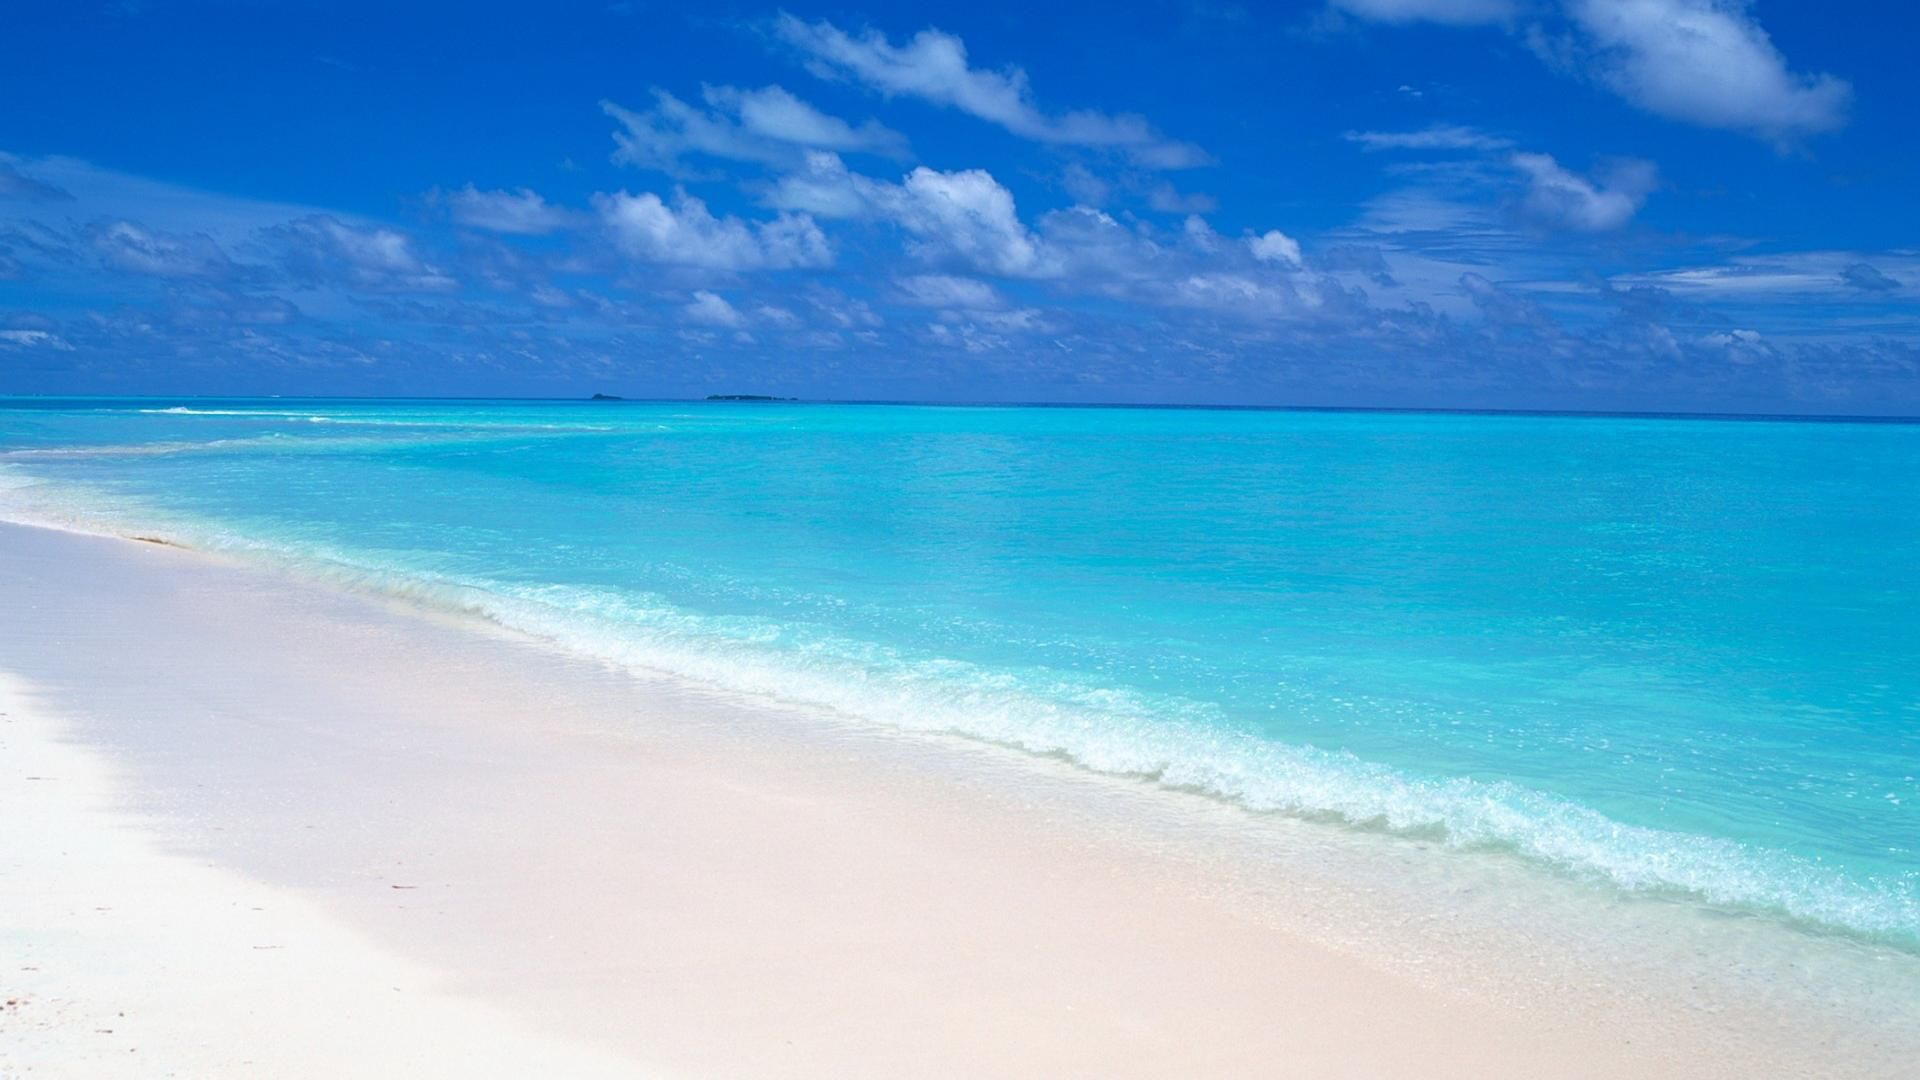 Beautiful Tropical Beach 1920x1080 Beaches In The World Places To Travel Beautiful Beaches